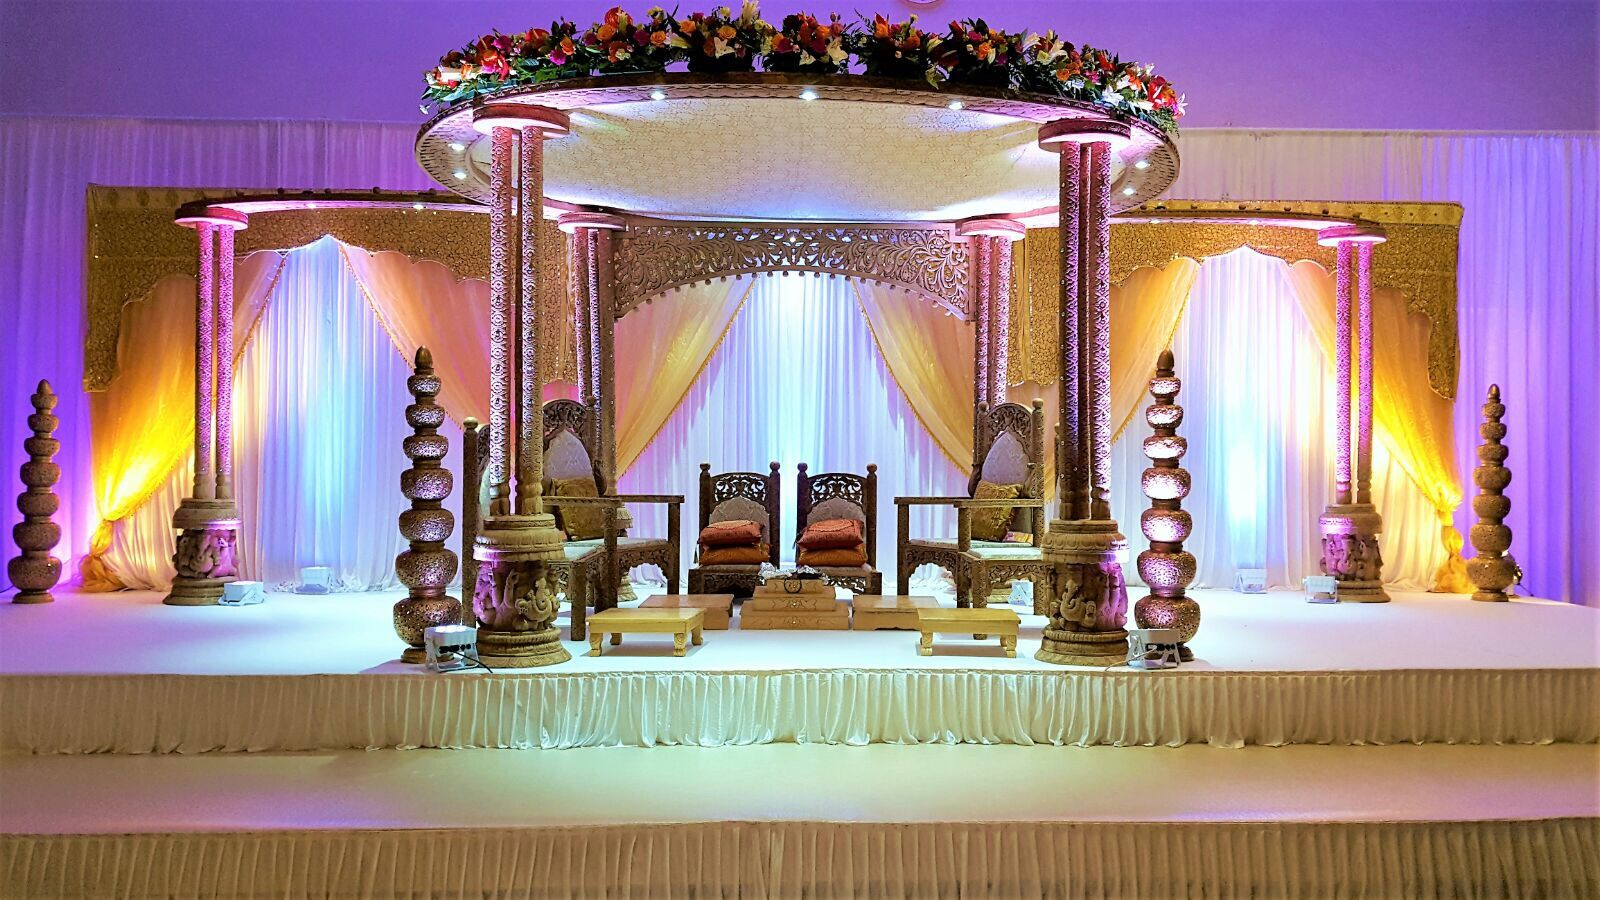 Wedding stage decoration images in hd  Pin by Rish Patel on Mandaps  Pinterest